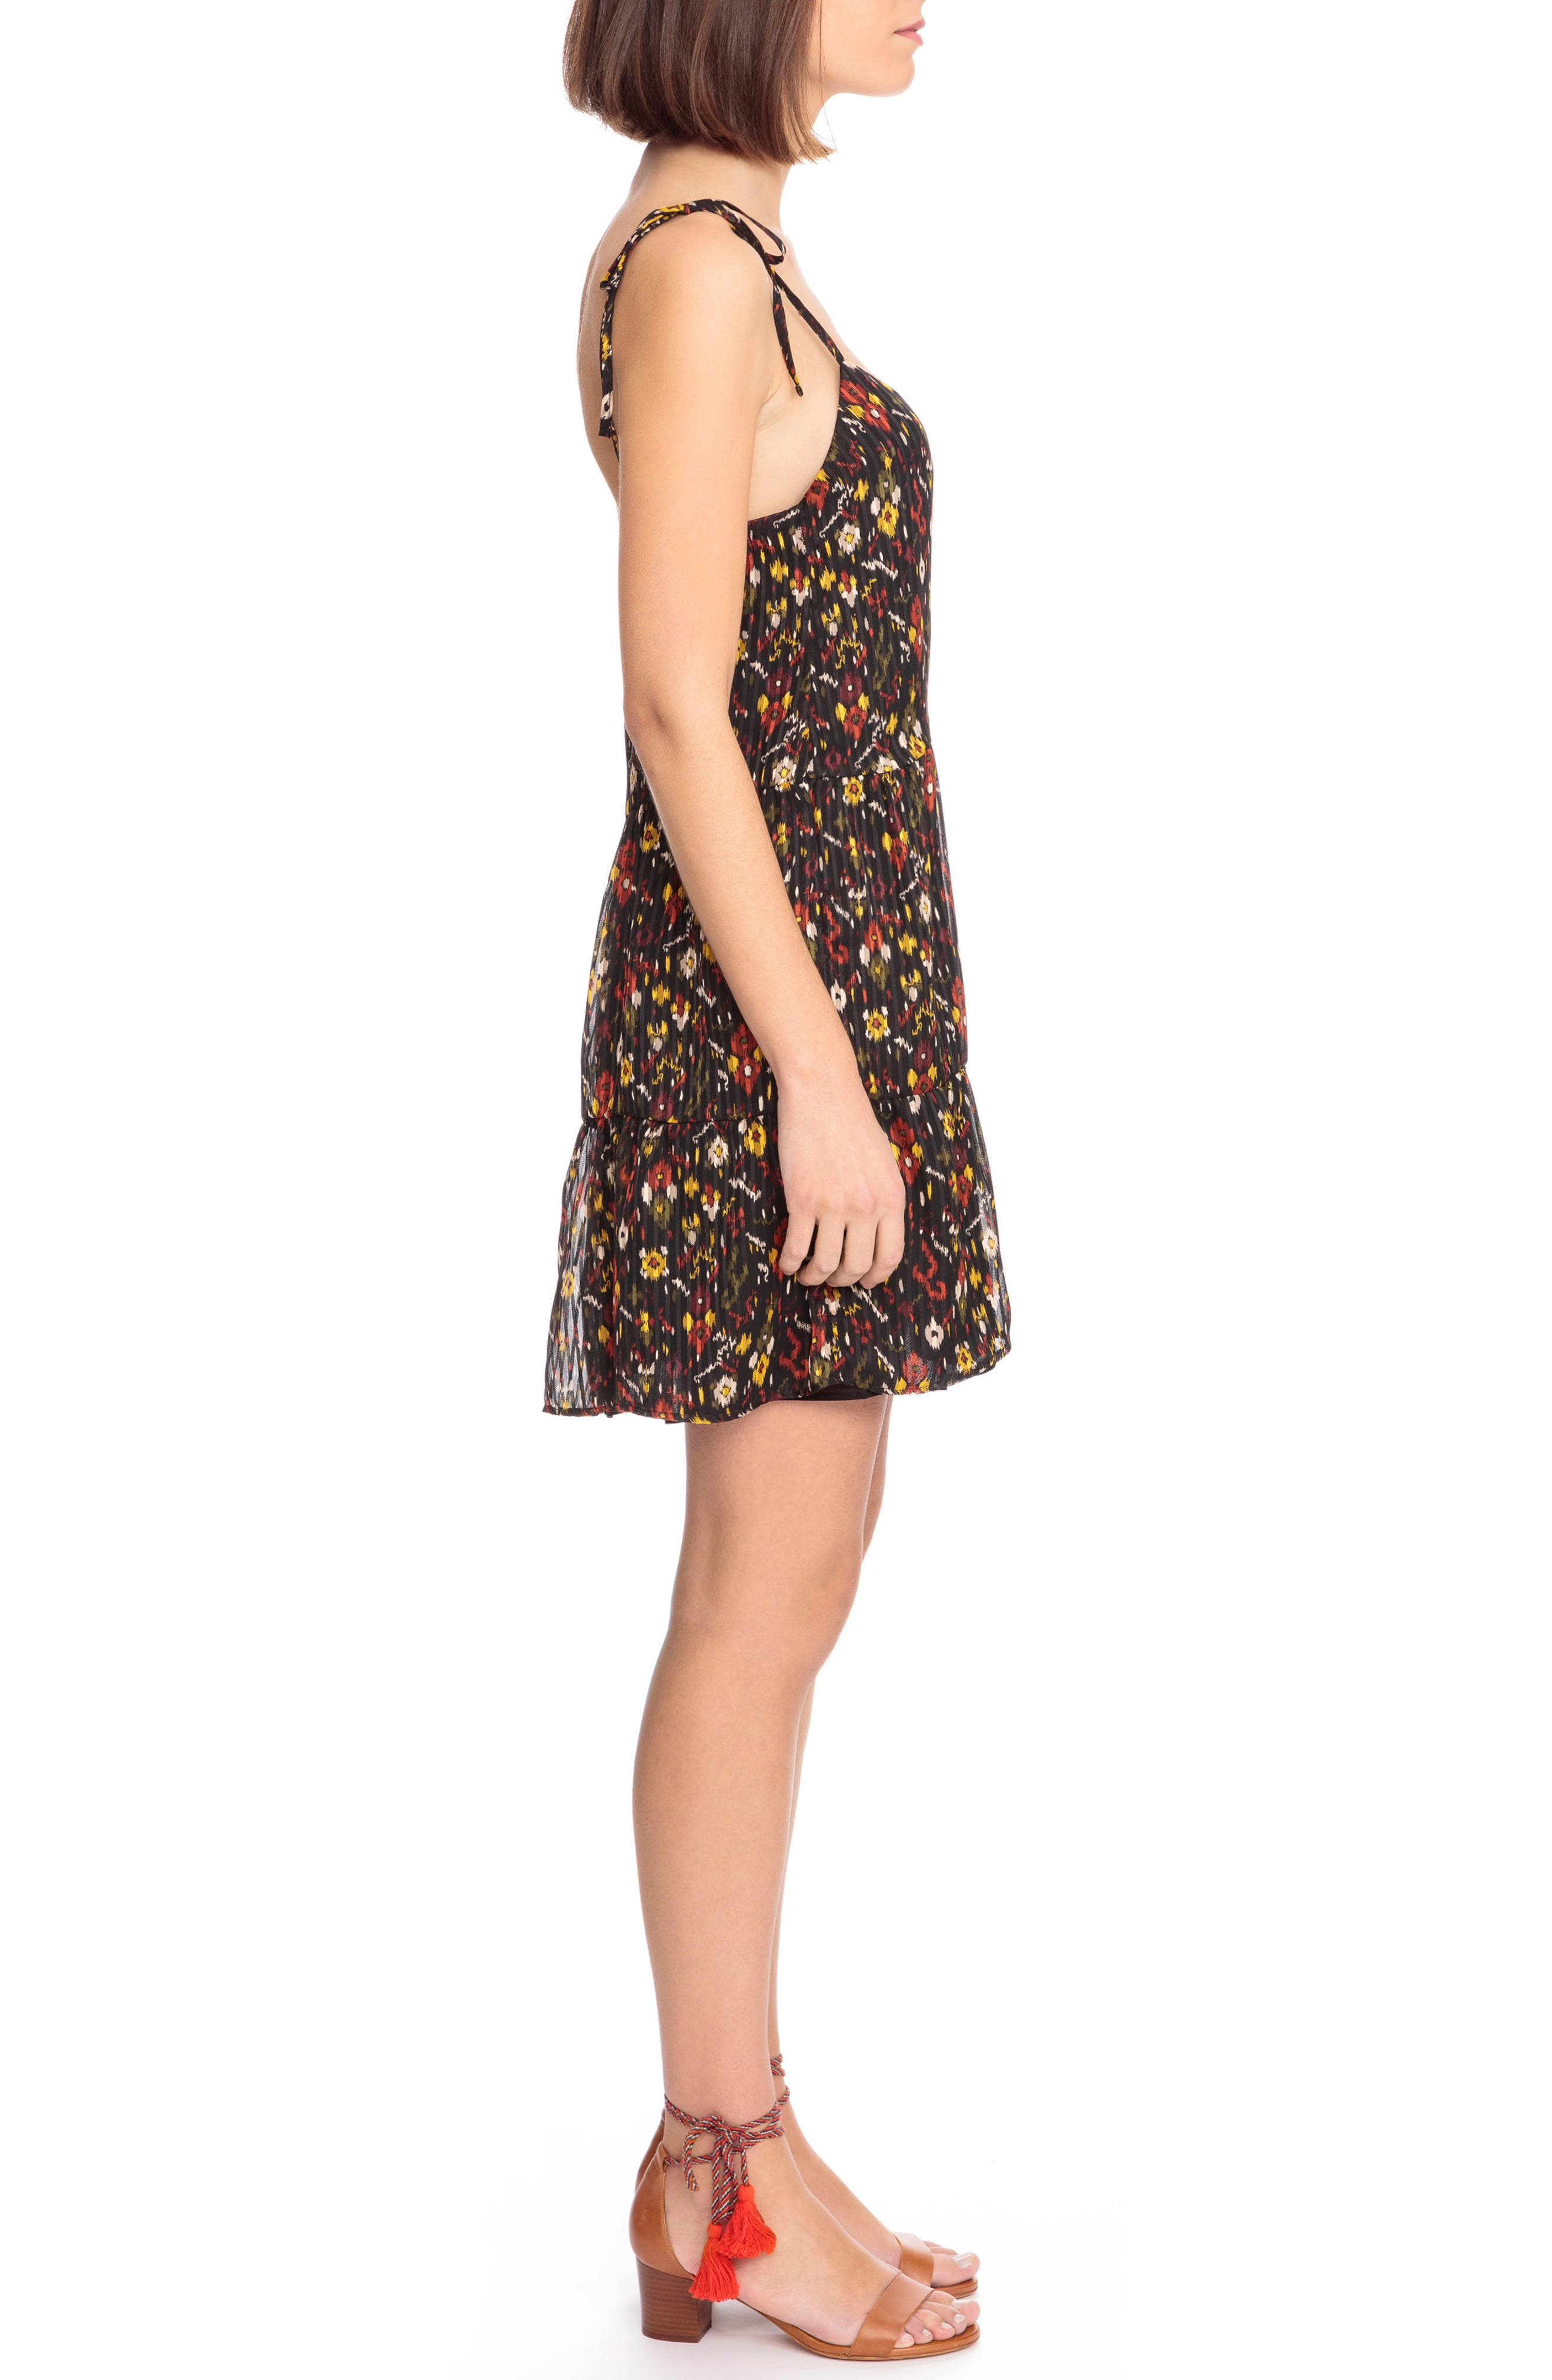 Felicie Floral Tie Strap Dress,                             Alternate thumbnail 3, color,                             Boho Print Red